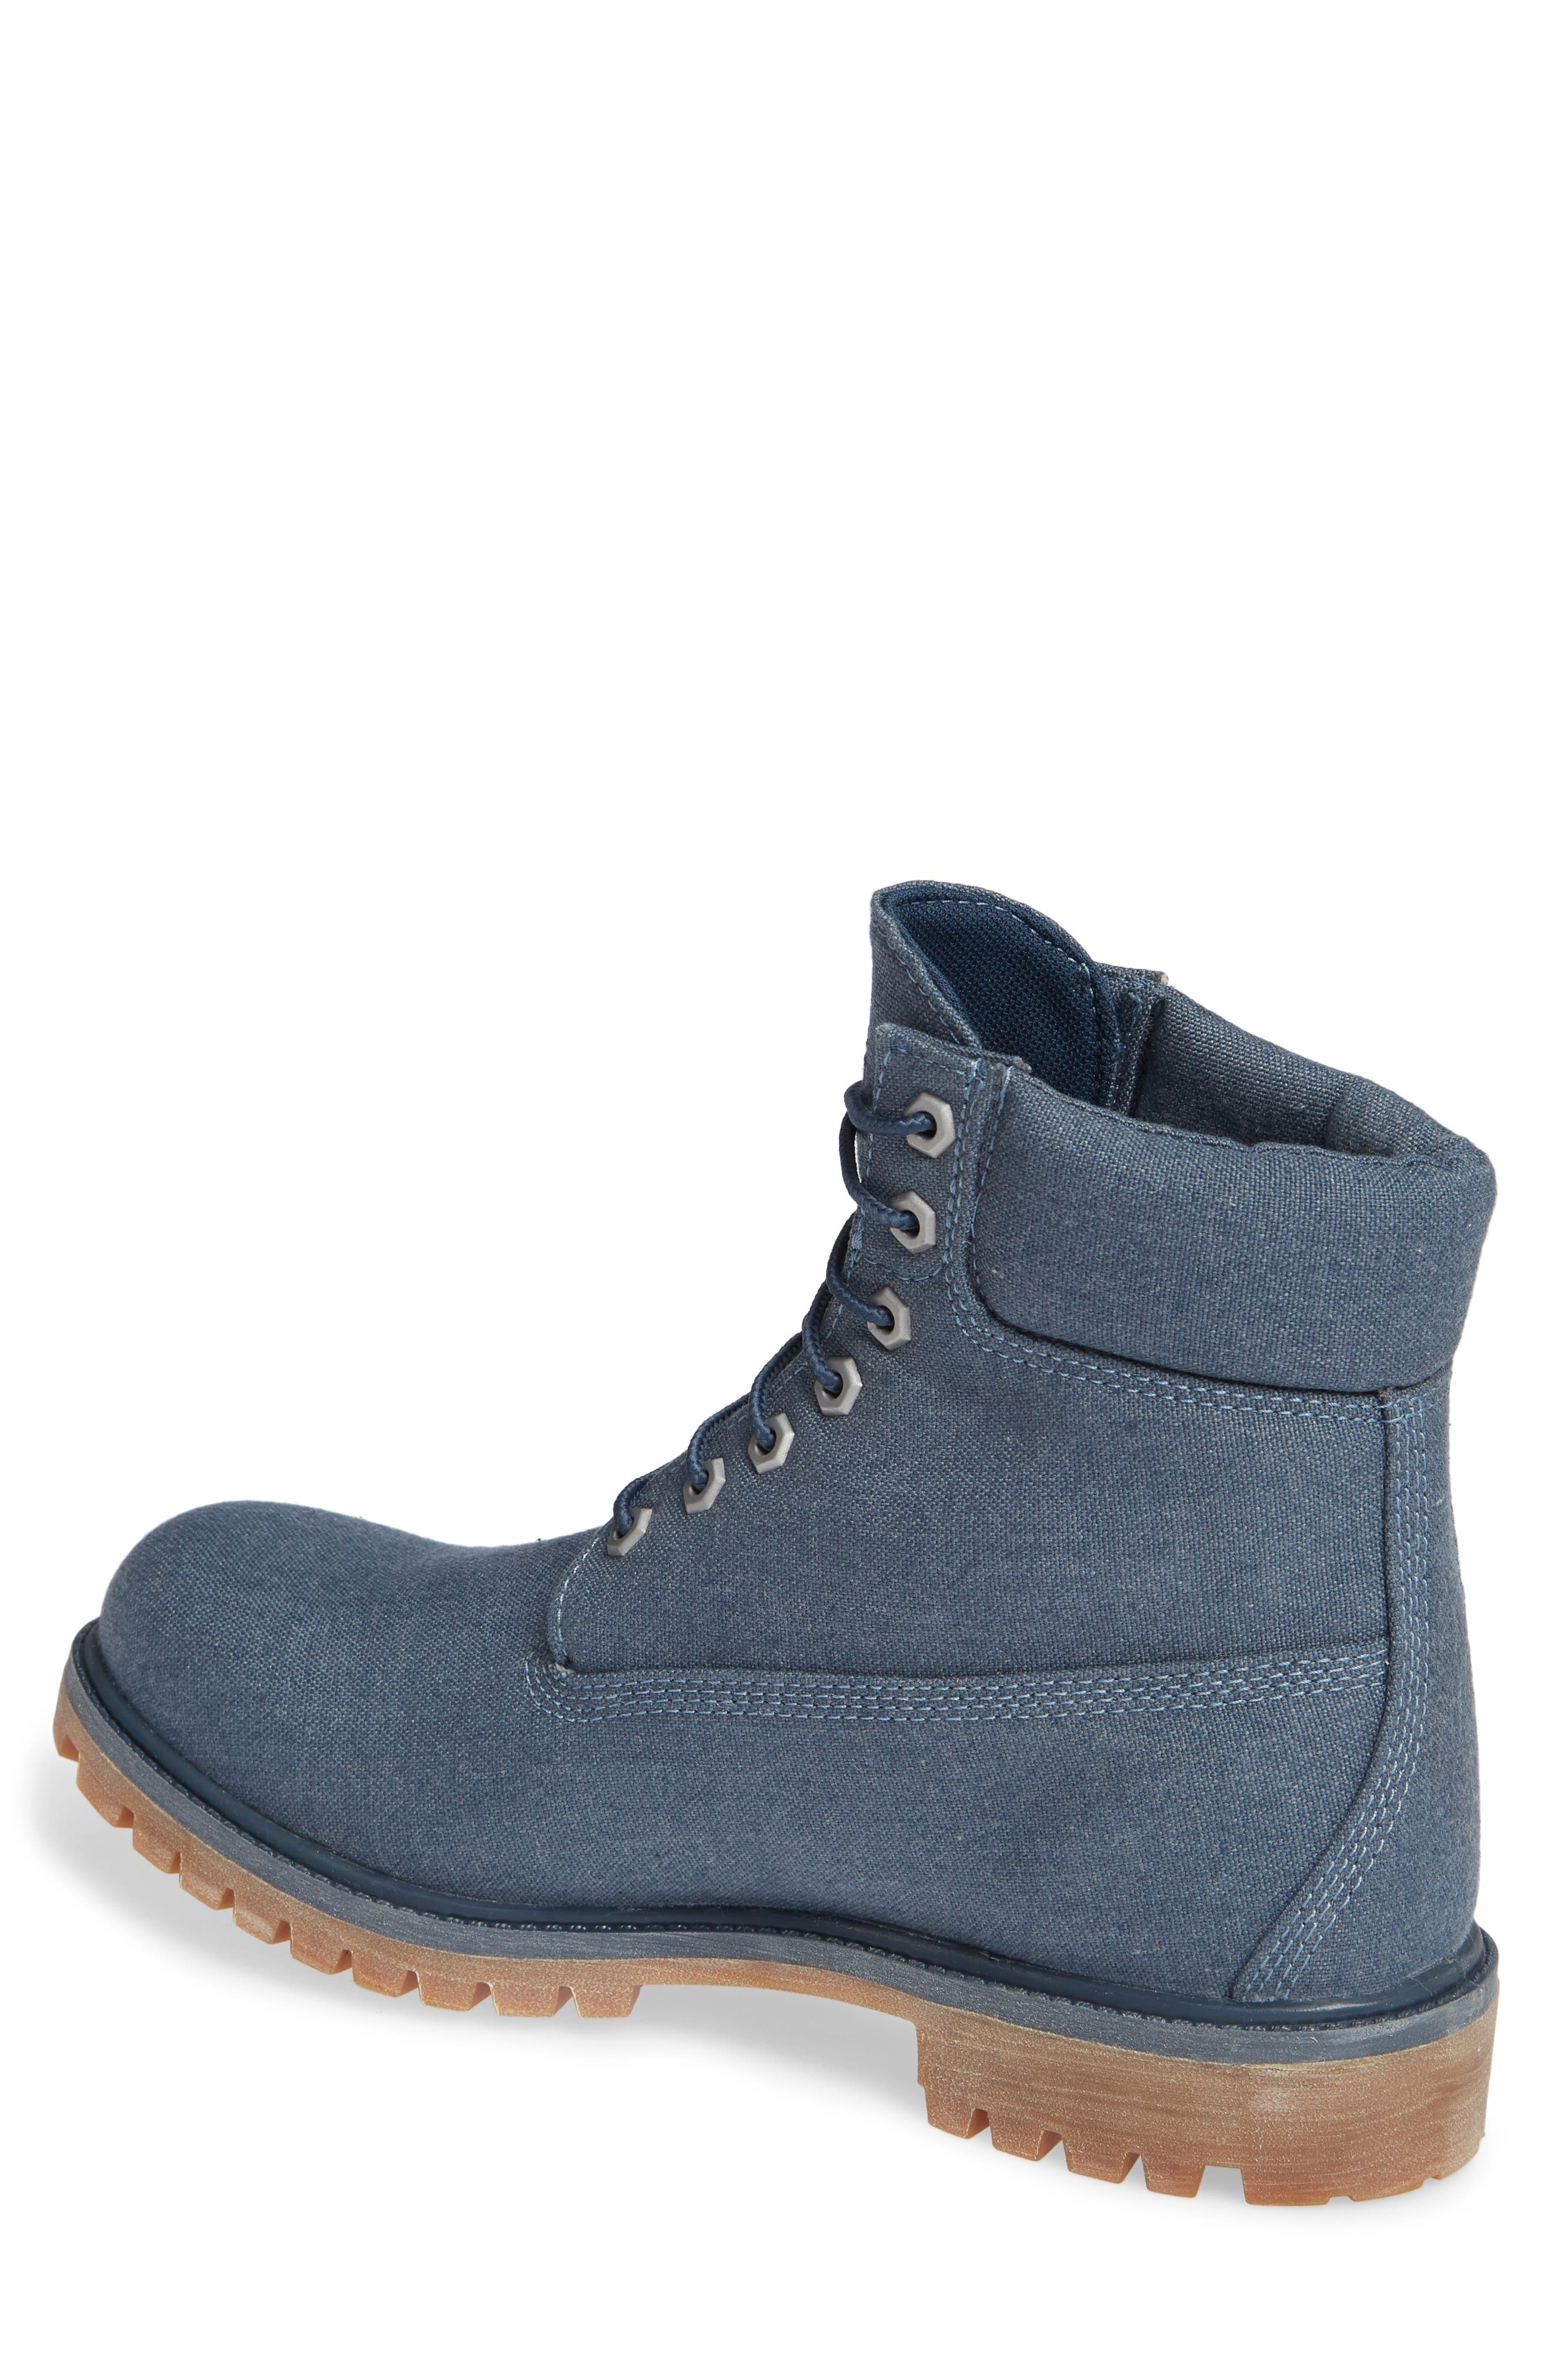 Premium Plain Toe Boot,                             Alternate thumbnail 2, color,                             MIDNIGHT NAVY THREAD